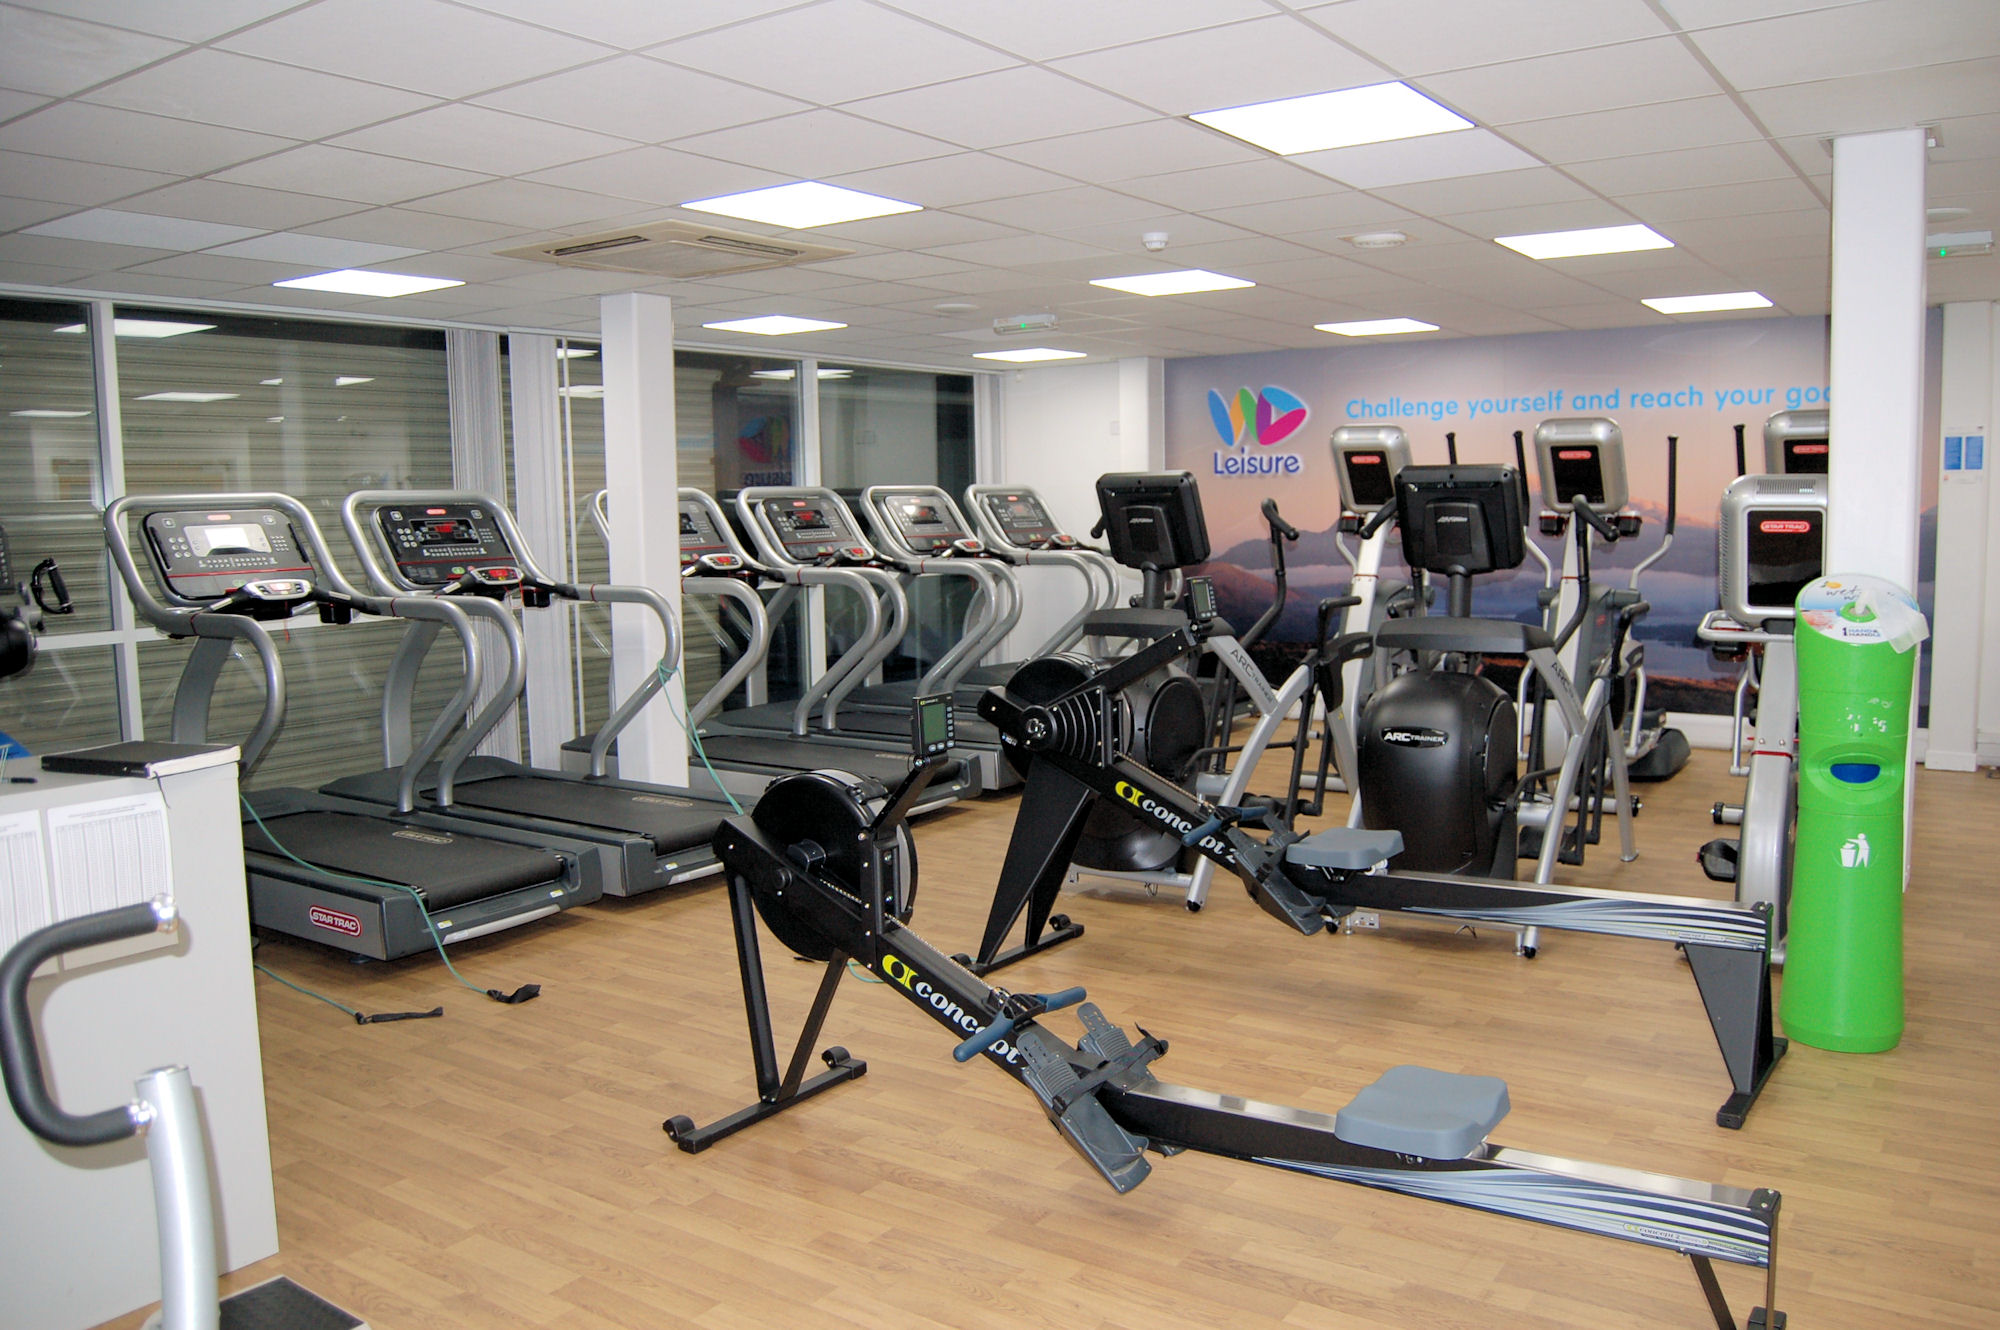 image of Fitness equipment - rowing machines and treadmills